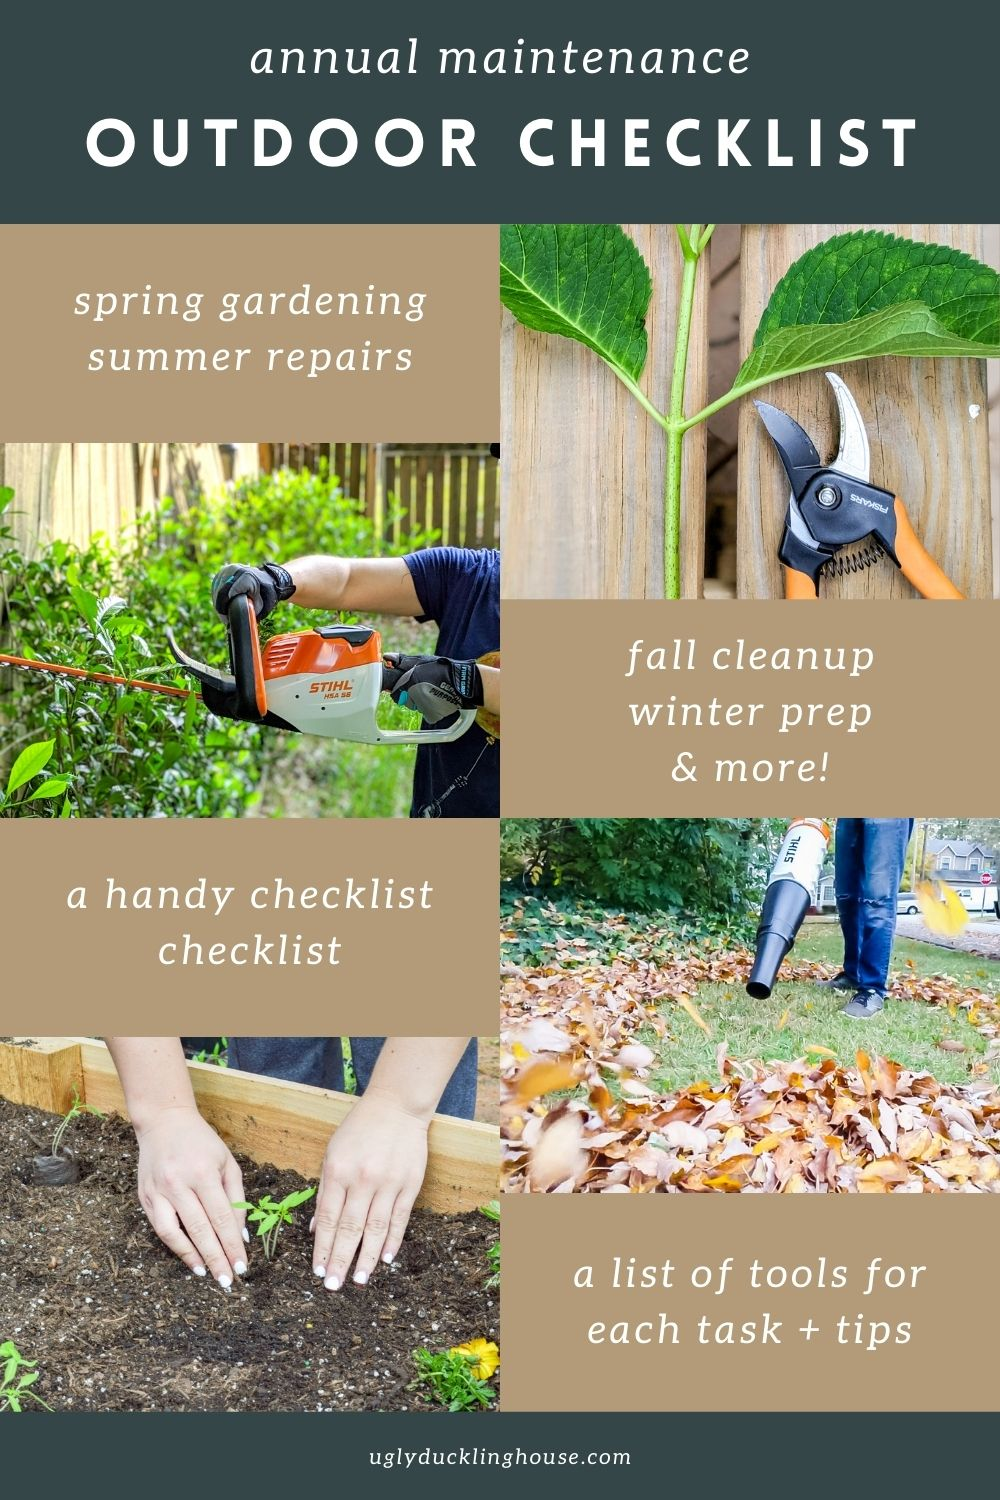 annual outdoor maintenance checklist - list of tools and tips